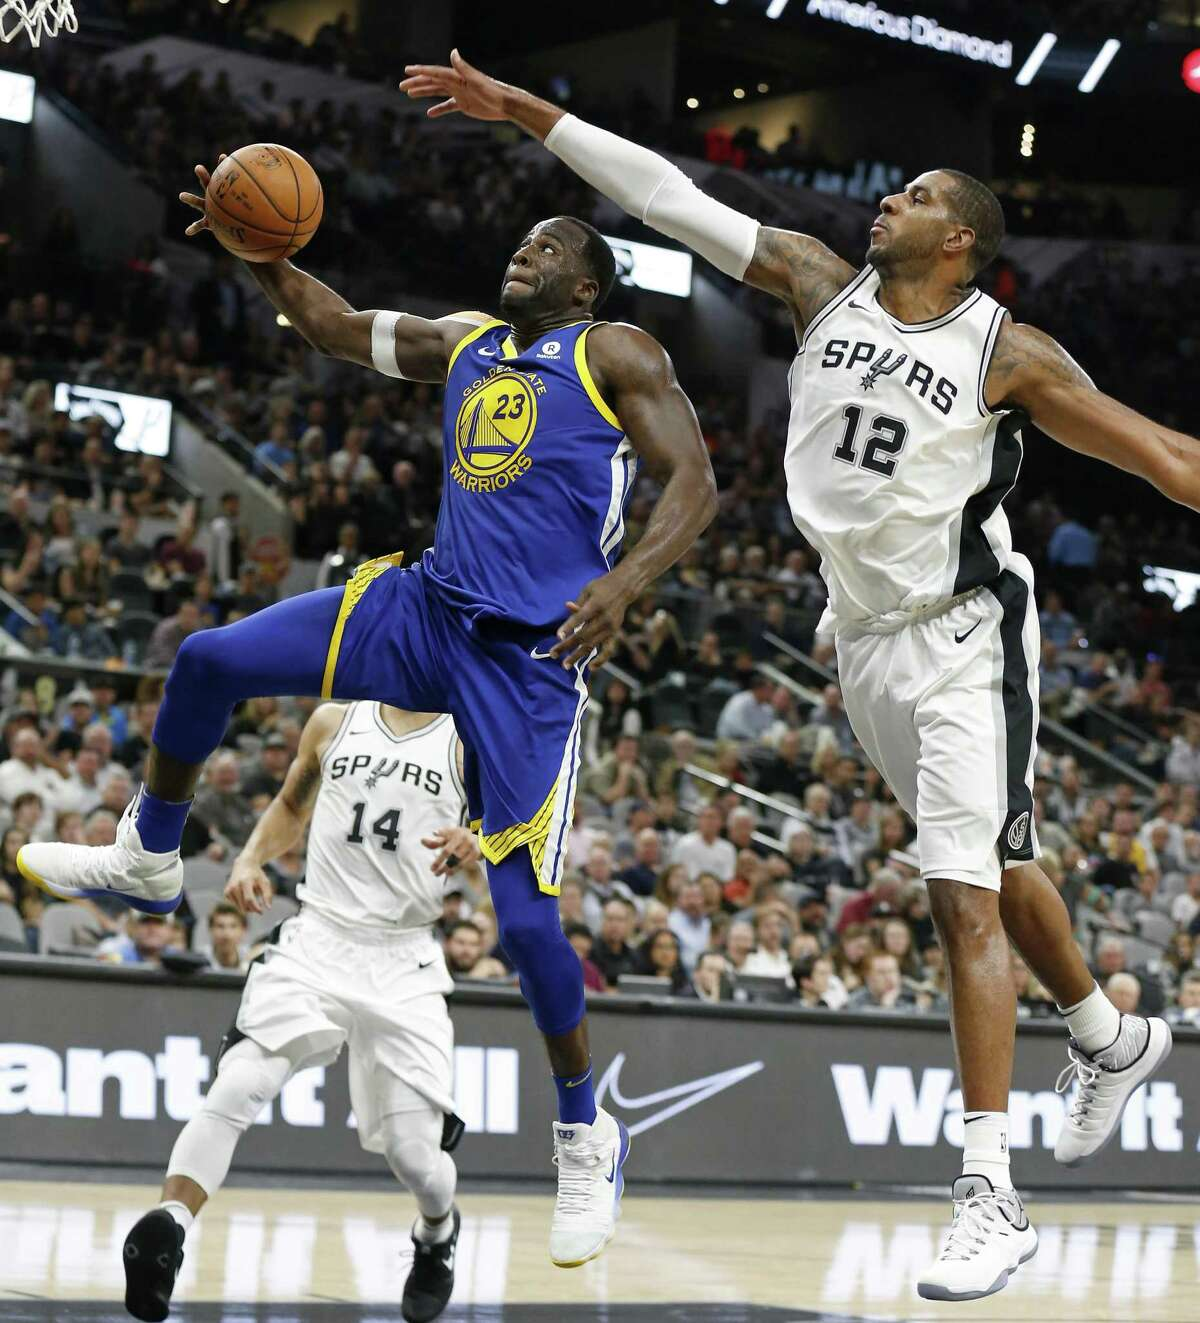 Golden State Warriors' Draymond Green goes up for a dunk around San Antonio Spurs?• LaMarcus Aldridge during second half action Thursday Nov. 2, 2017 at the AT&T Center. The Warriors won 112-92.